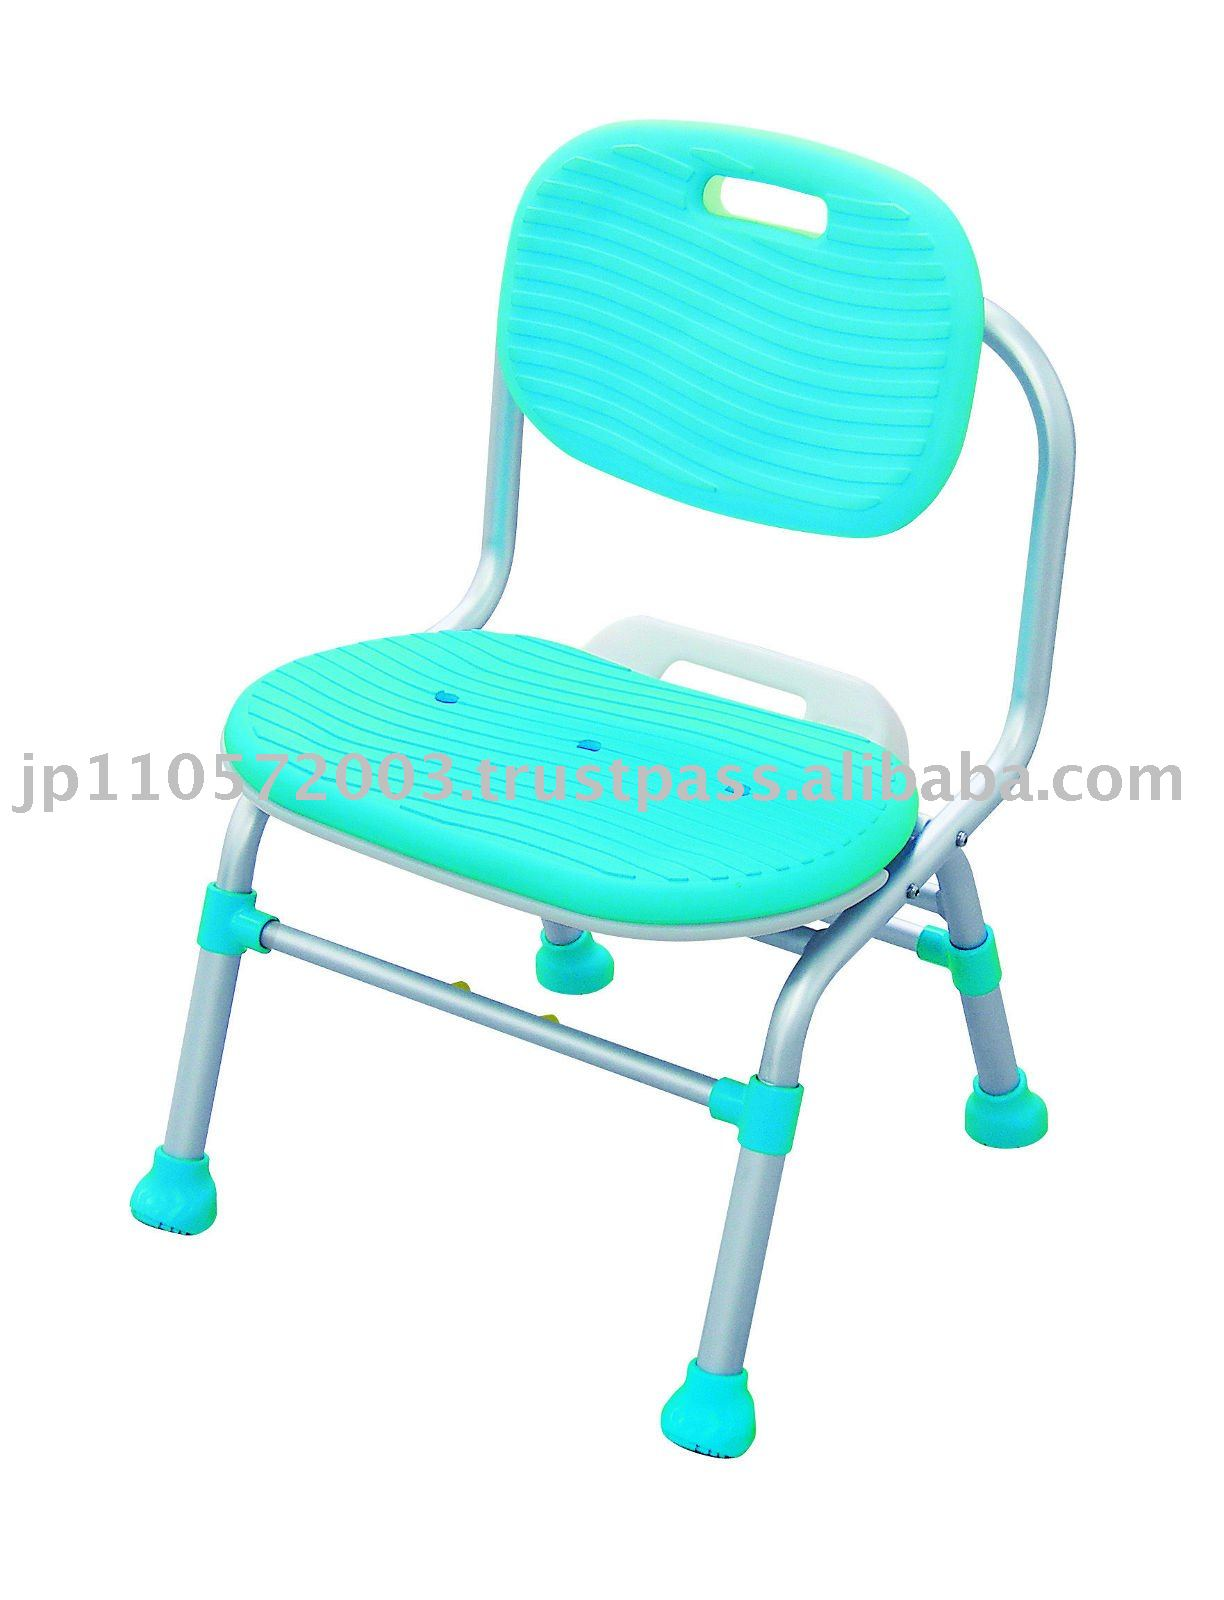 Tacaof Sc03 Shower Chair /rehabilitation Therapy Supplies / - Buy ...